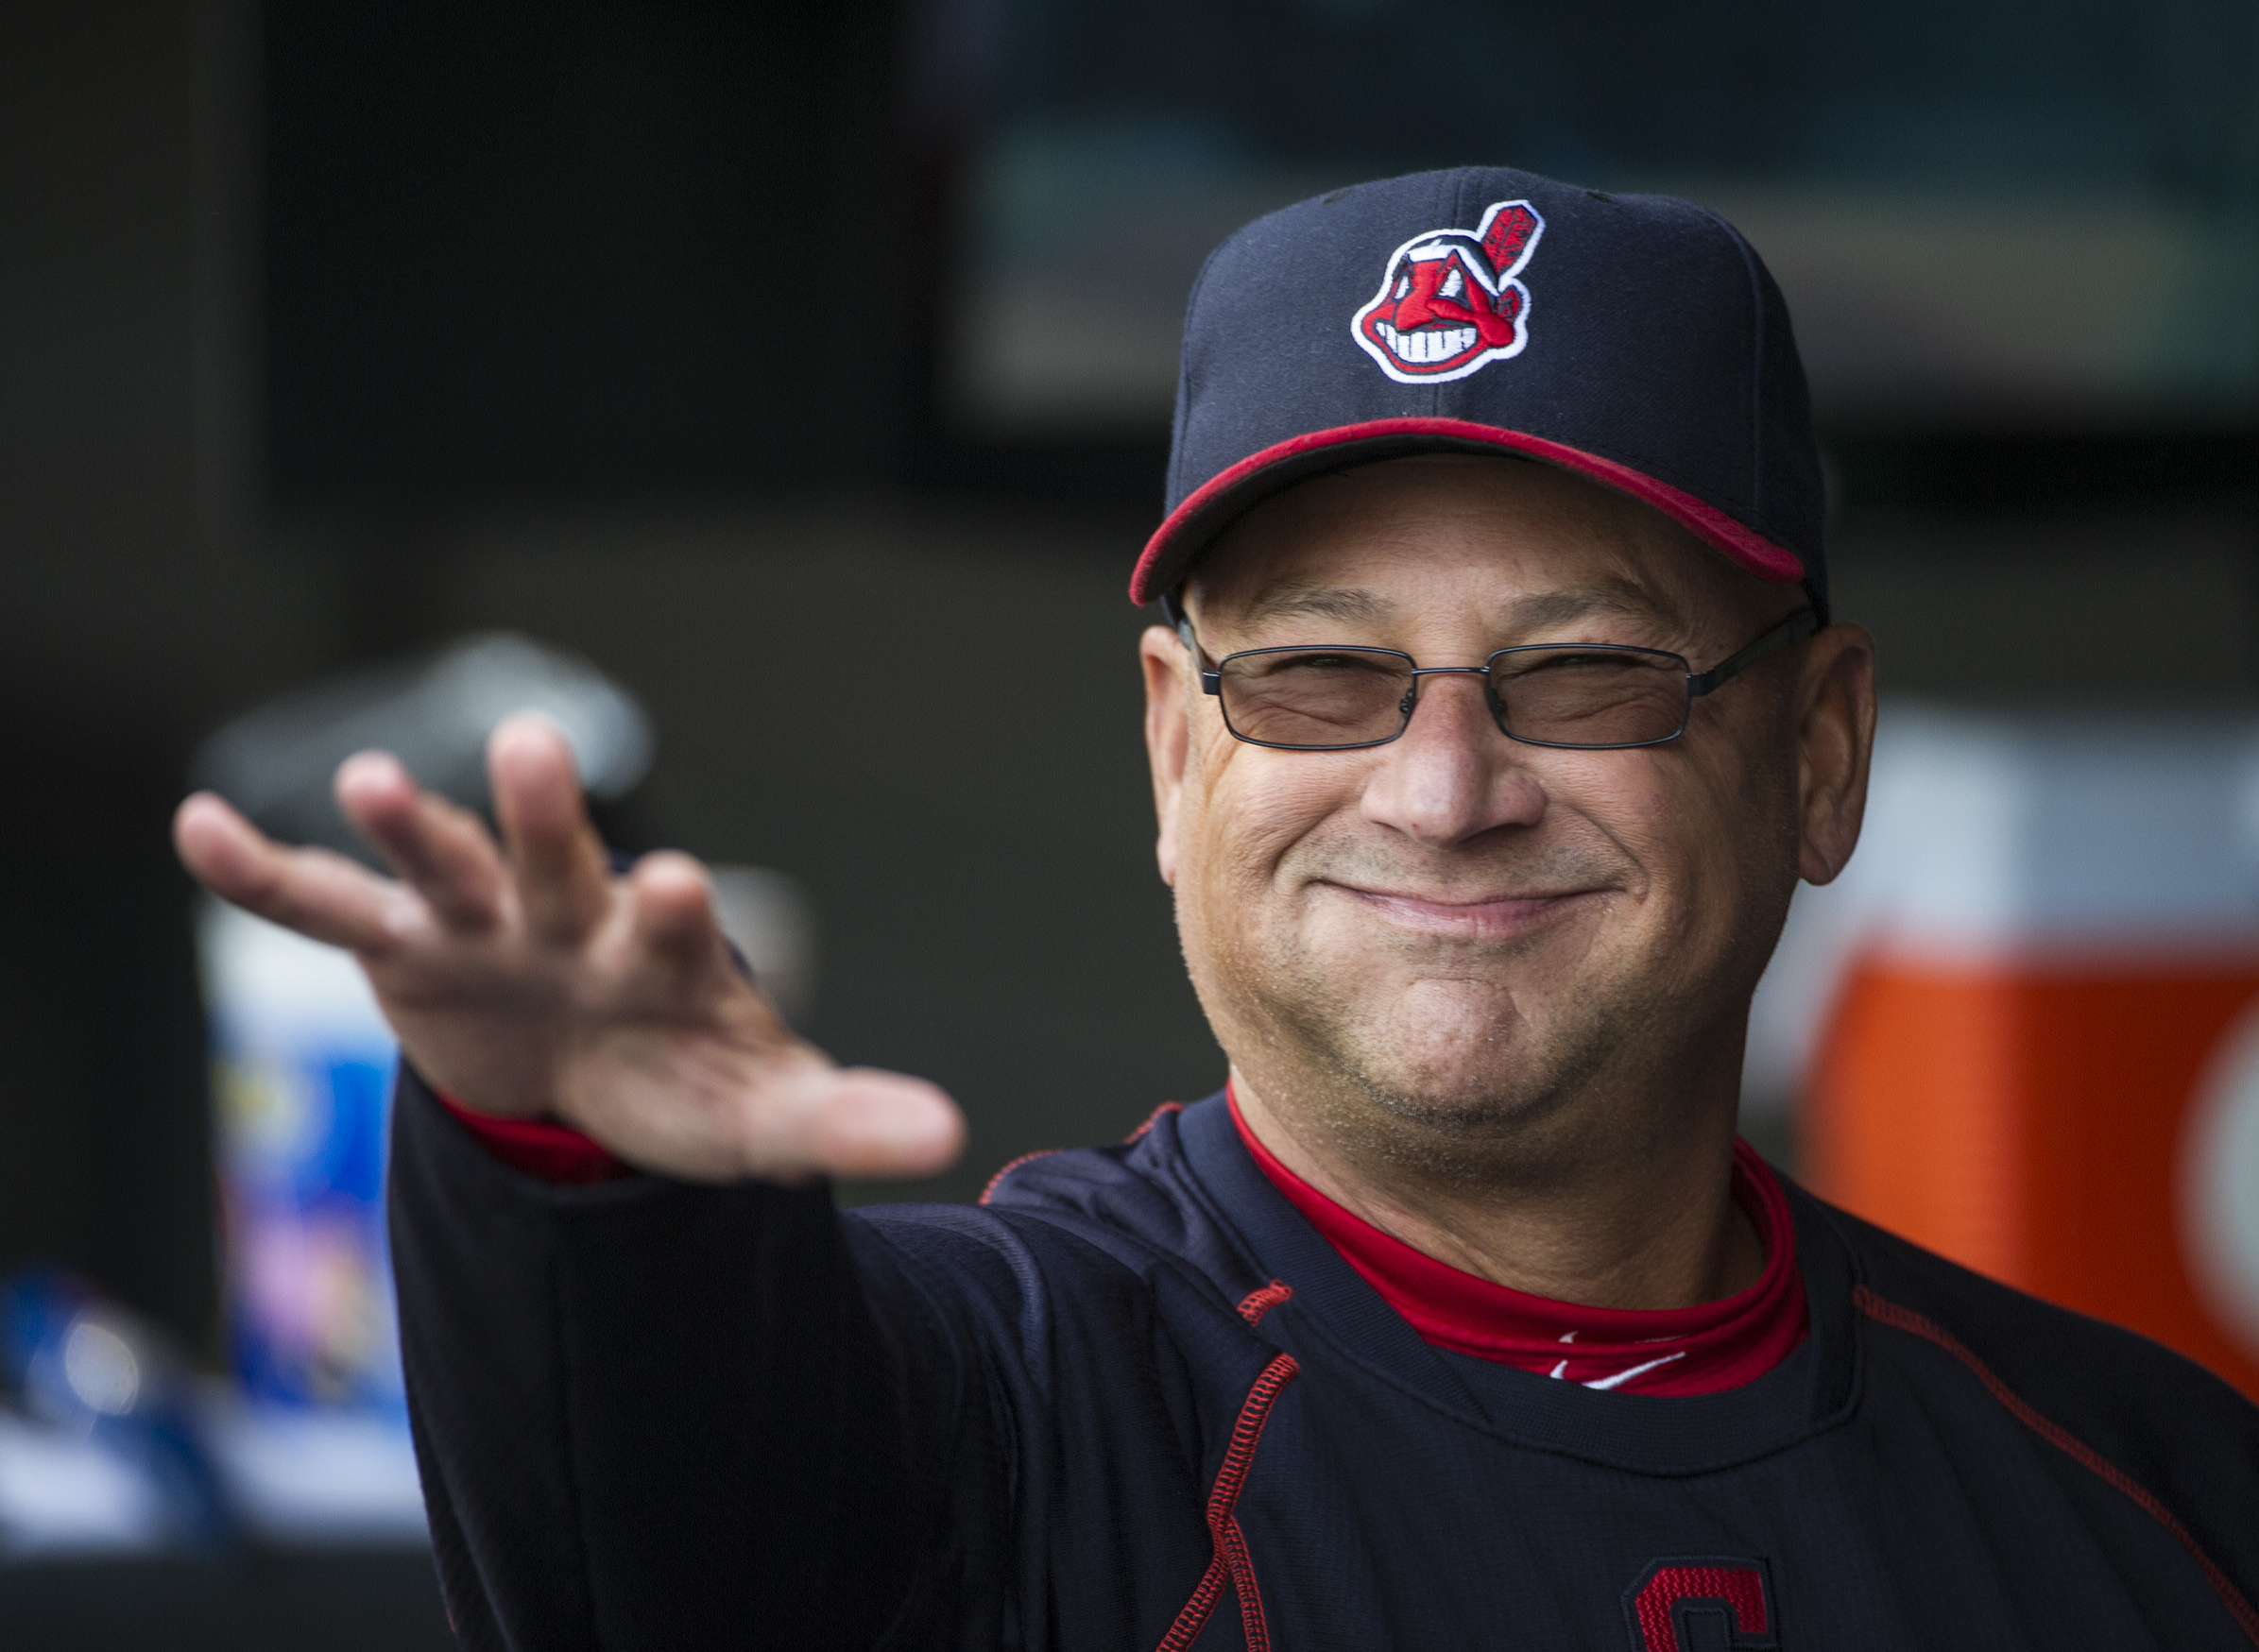 FILE - In this April 20, 2016, file photo, Cleveland Indians manager Terry Francona reacts to fans before a baseball game against the Seattle Mariners, in Cleveland.  While most of America gushes over the Chicago Cubs and their quest at ending a 108-year